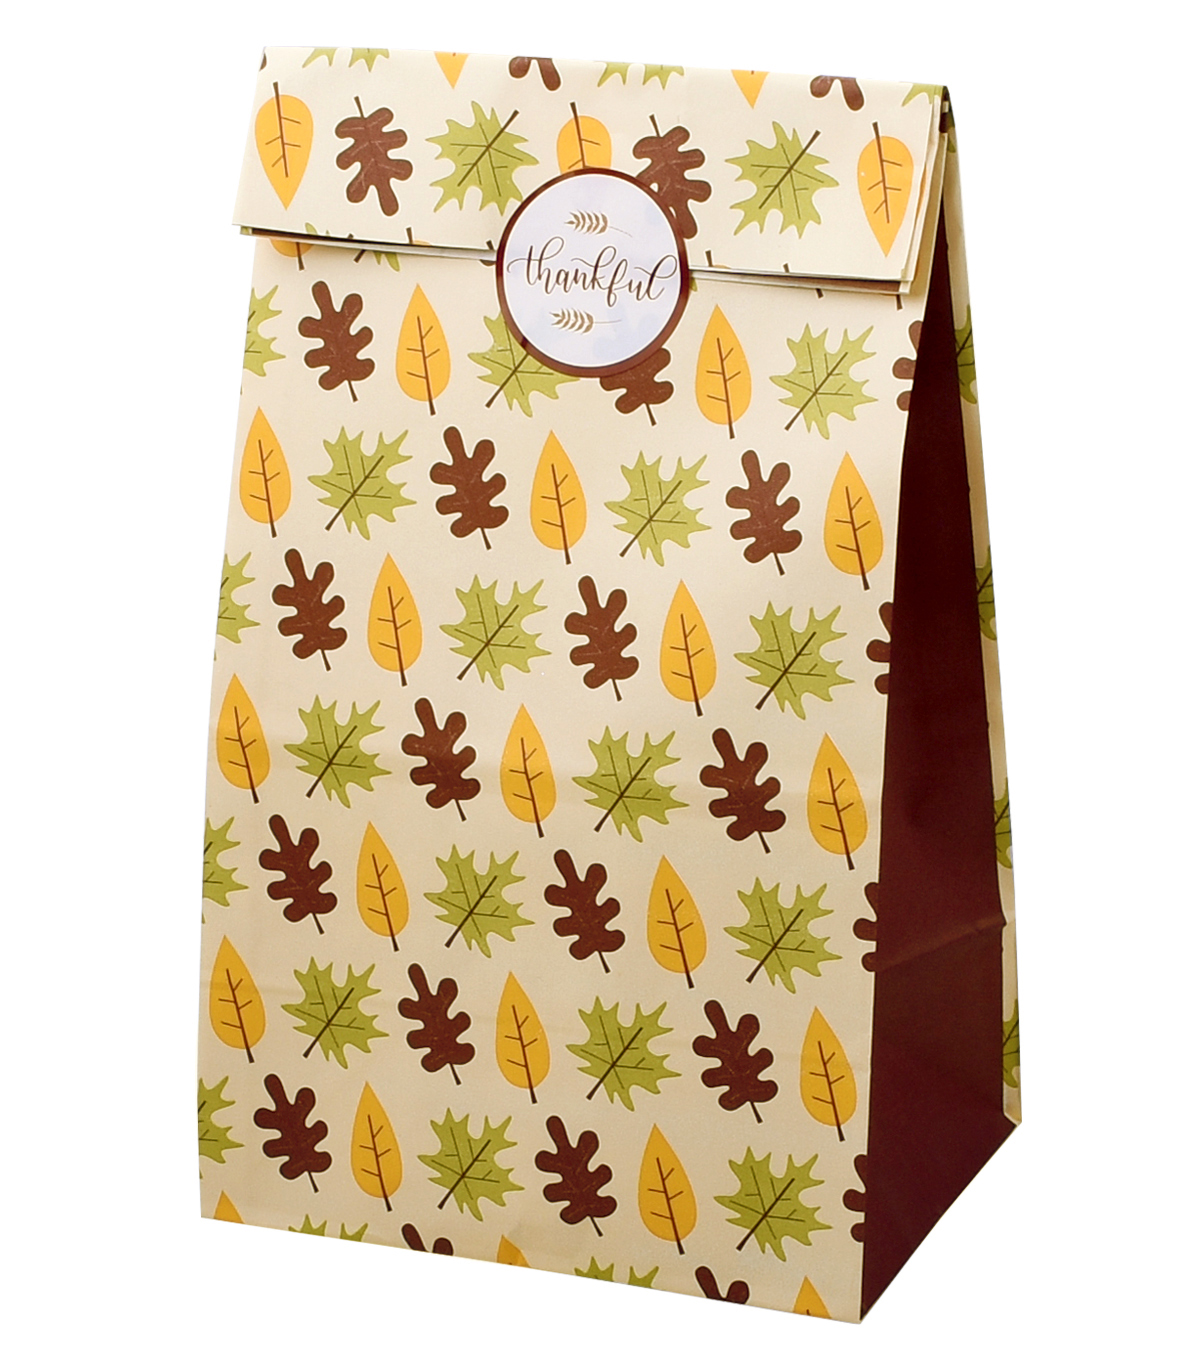 Simply Autumn 10 pk Loaf Bag-Leaves & Thankful